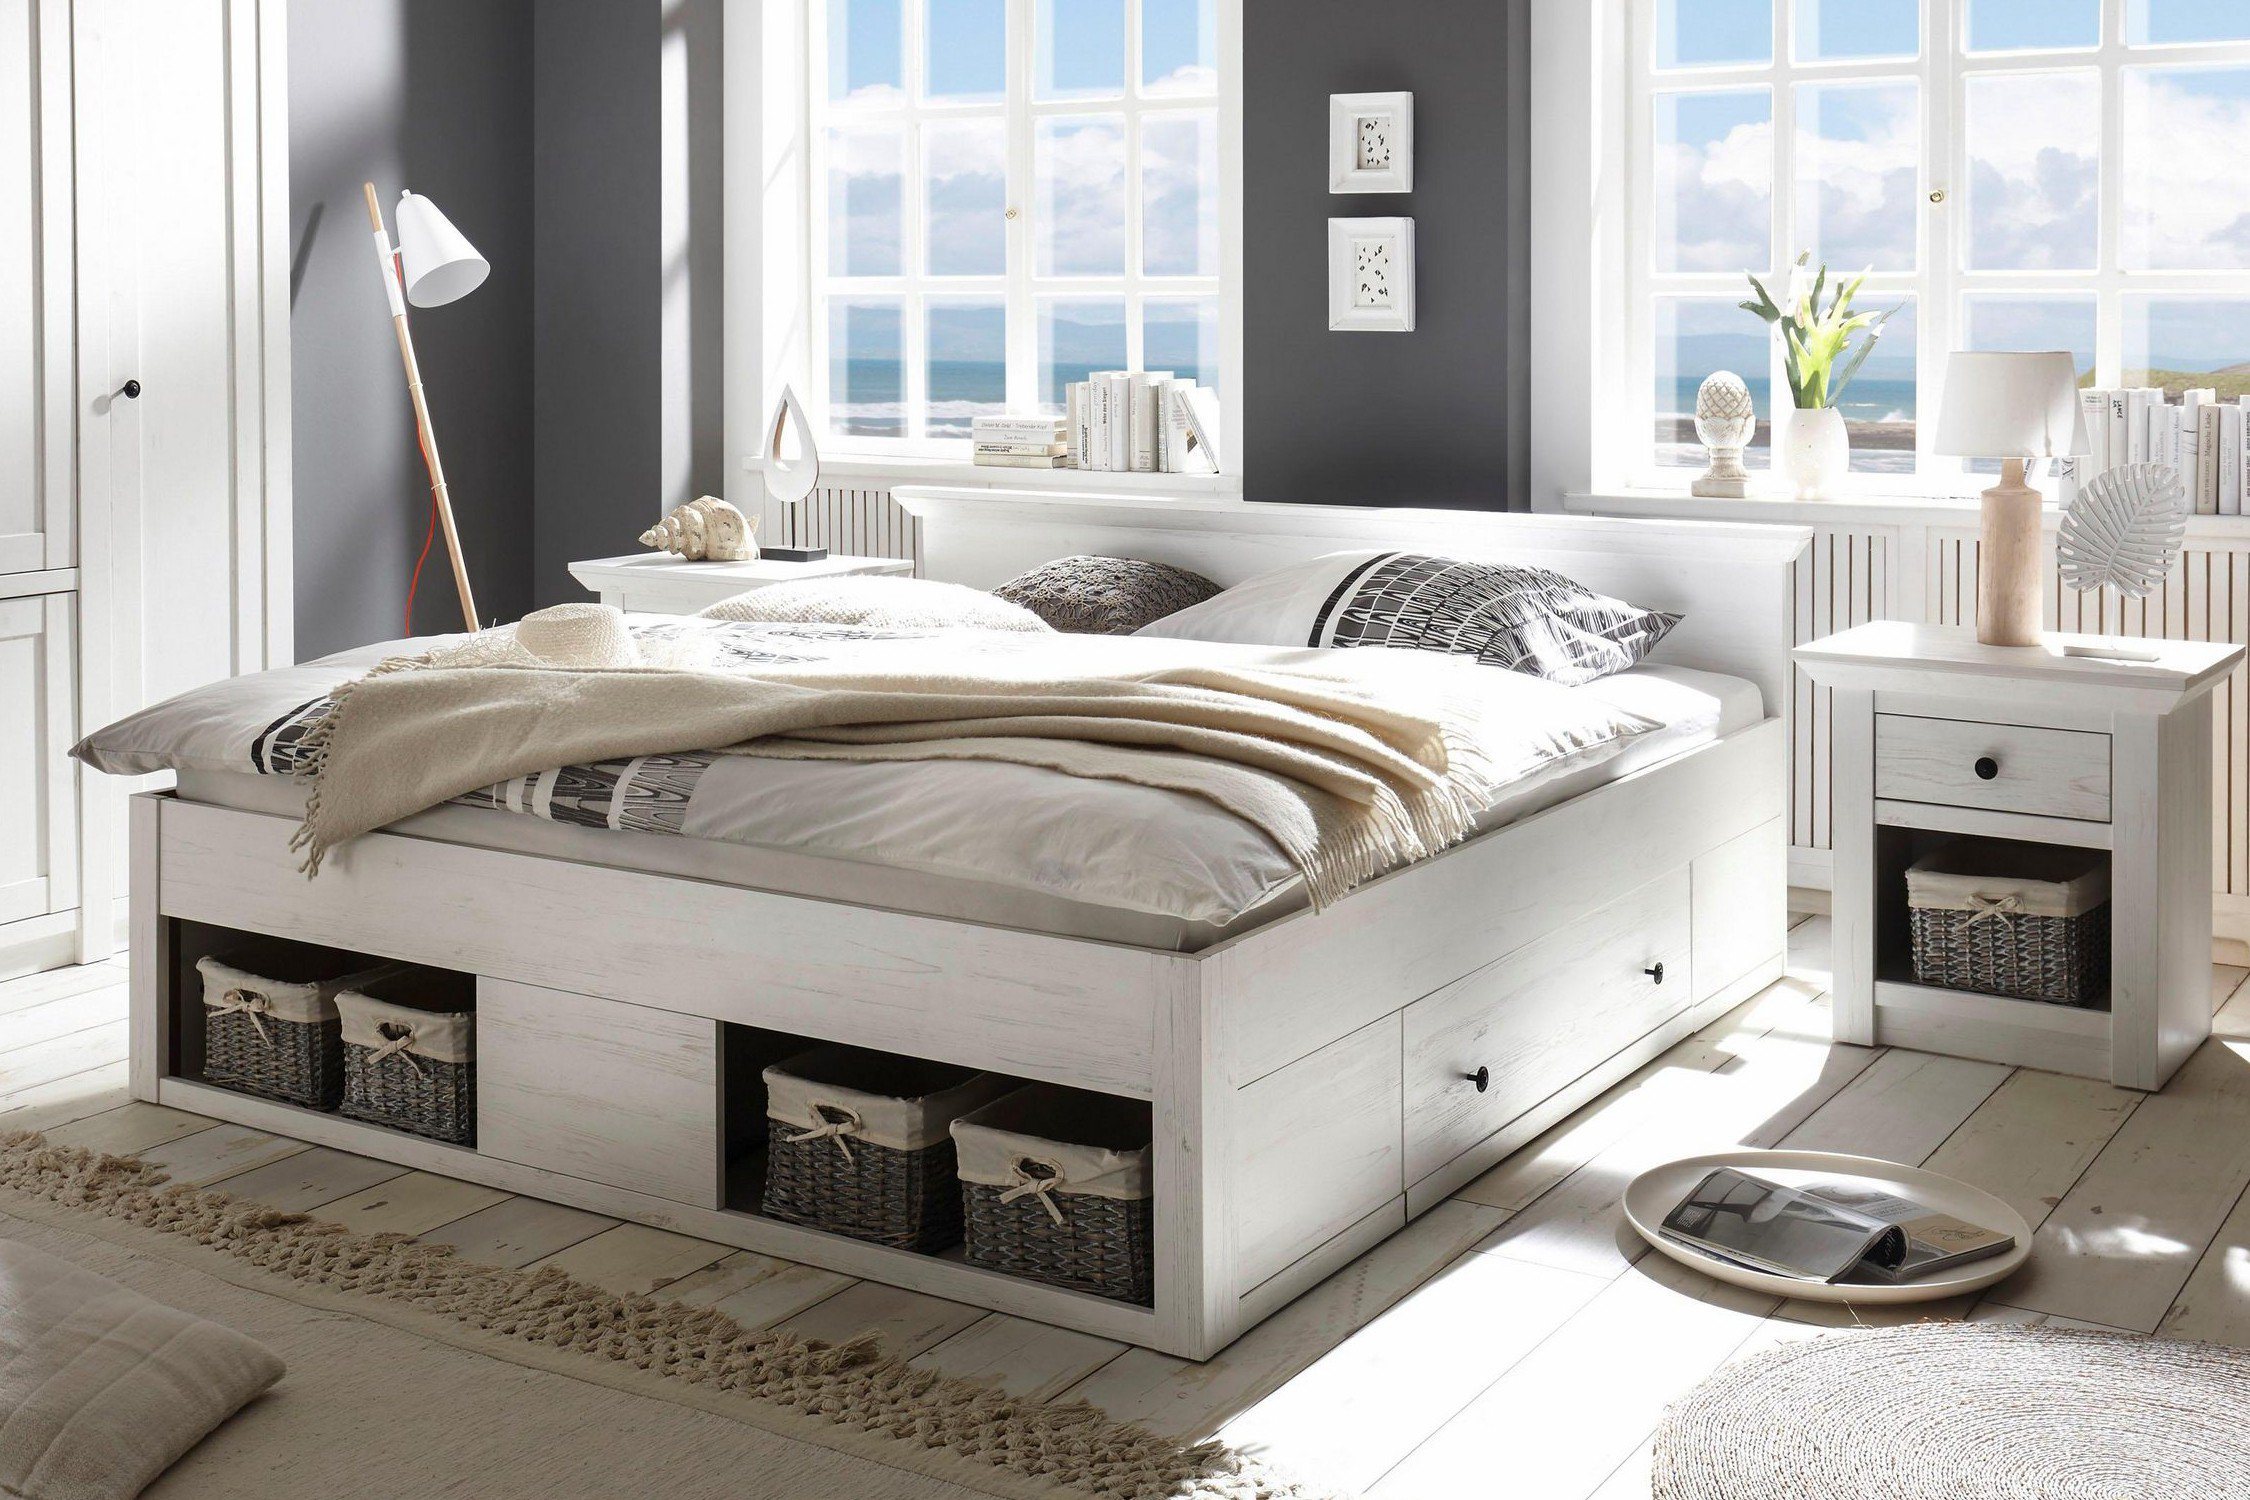 imv steinheim doppelbett westerland wei m bel letz. Black Bedroom Furniture Sets. Home Design Ideas